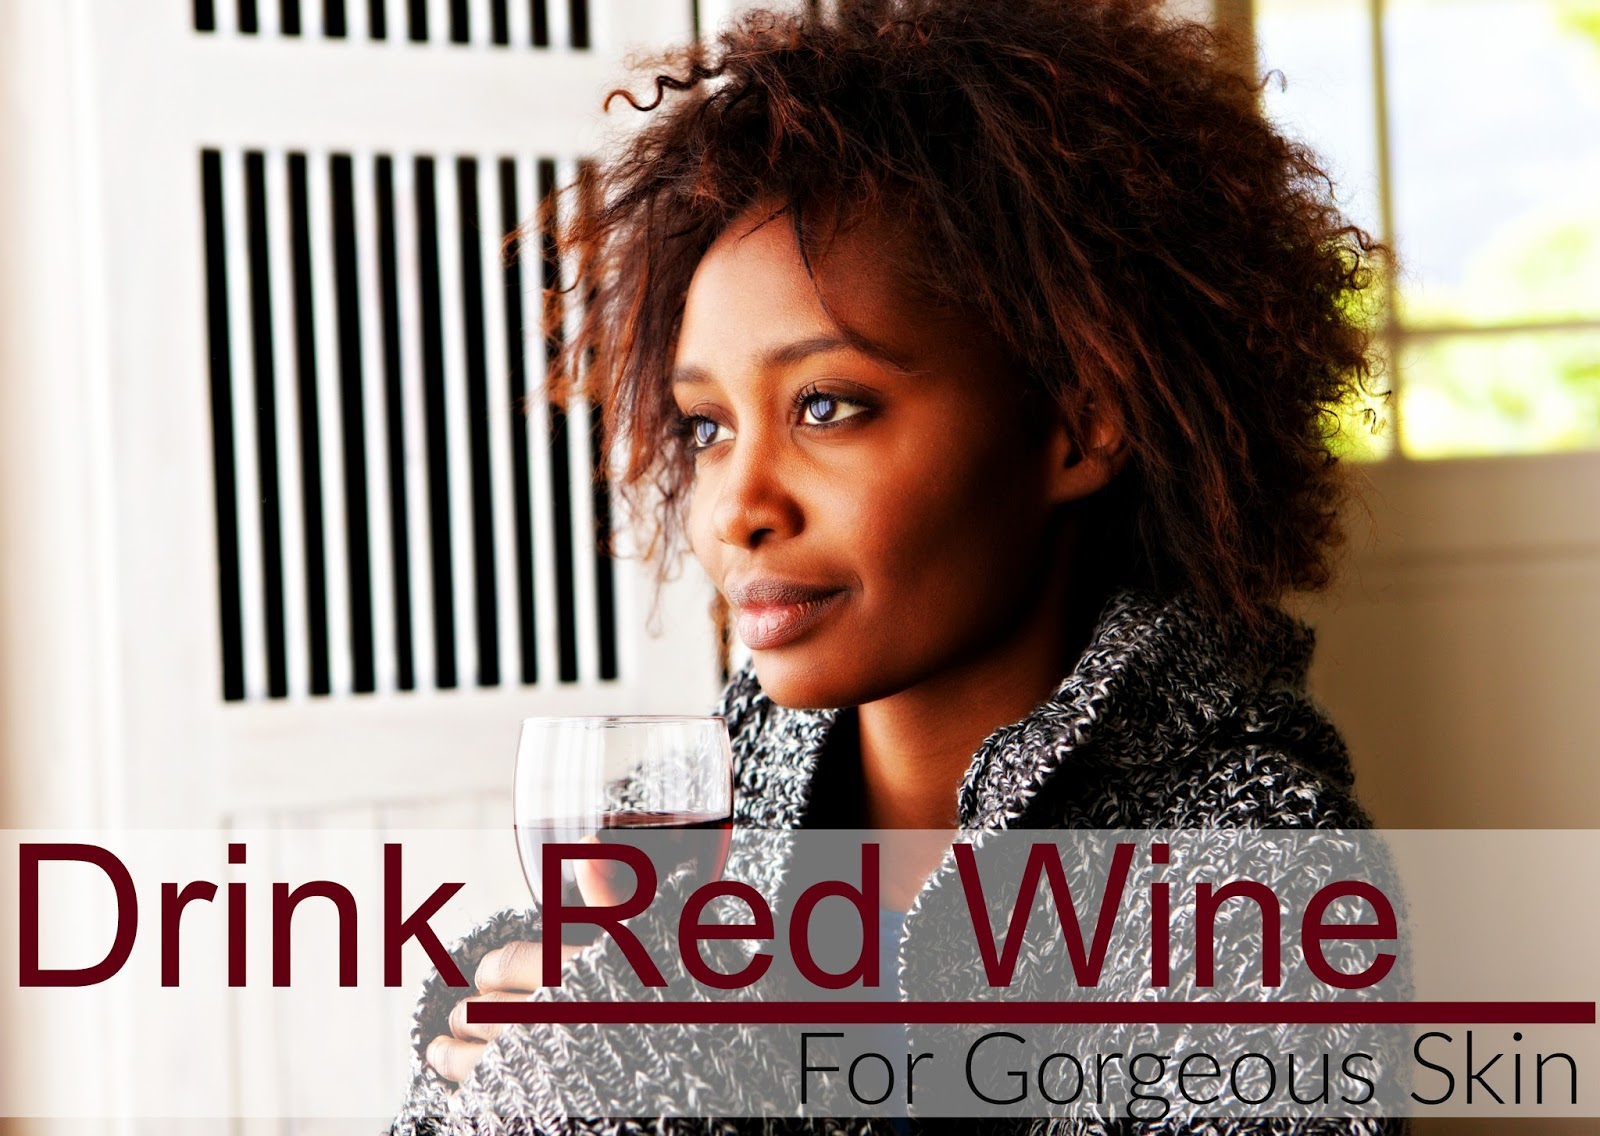 Drink & Use Red Wine For Gorgeous Skin